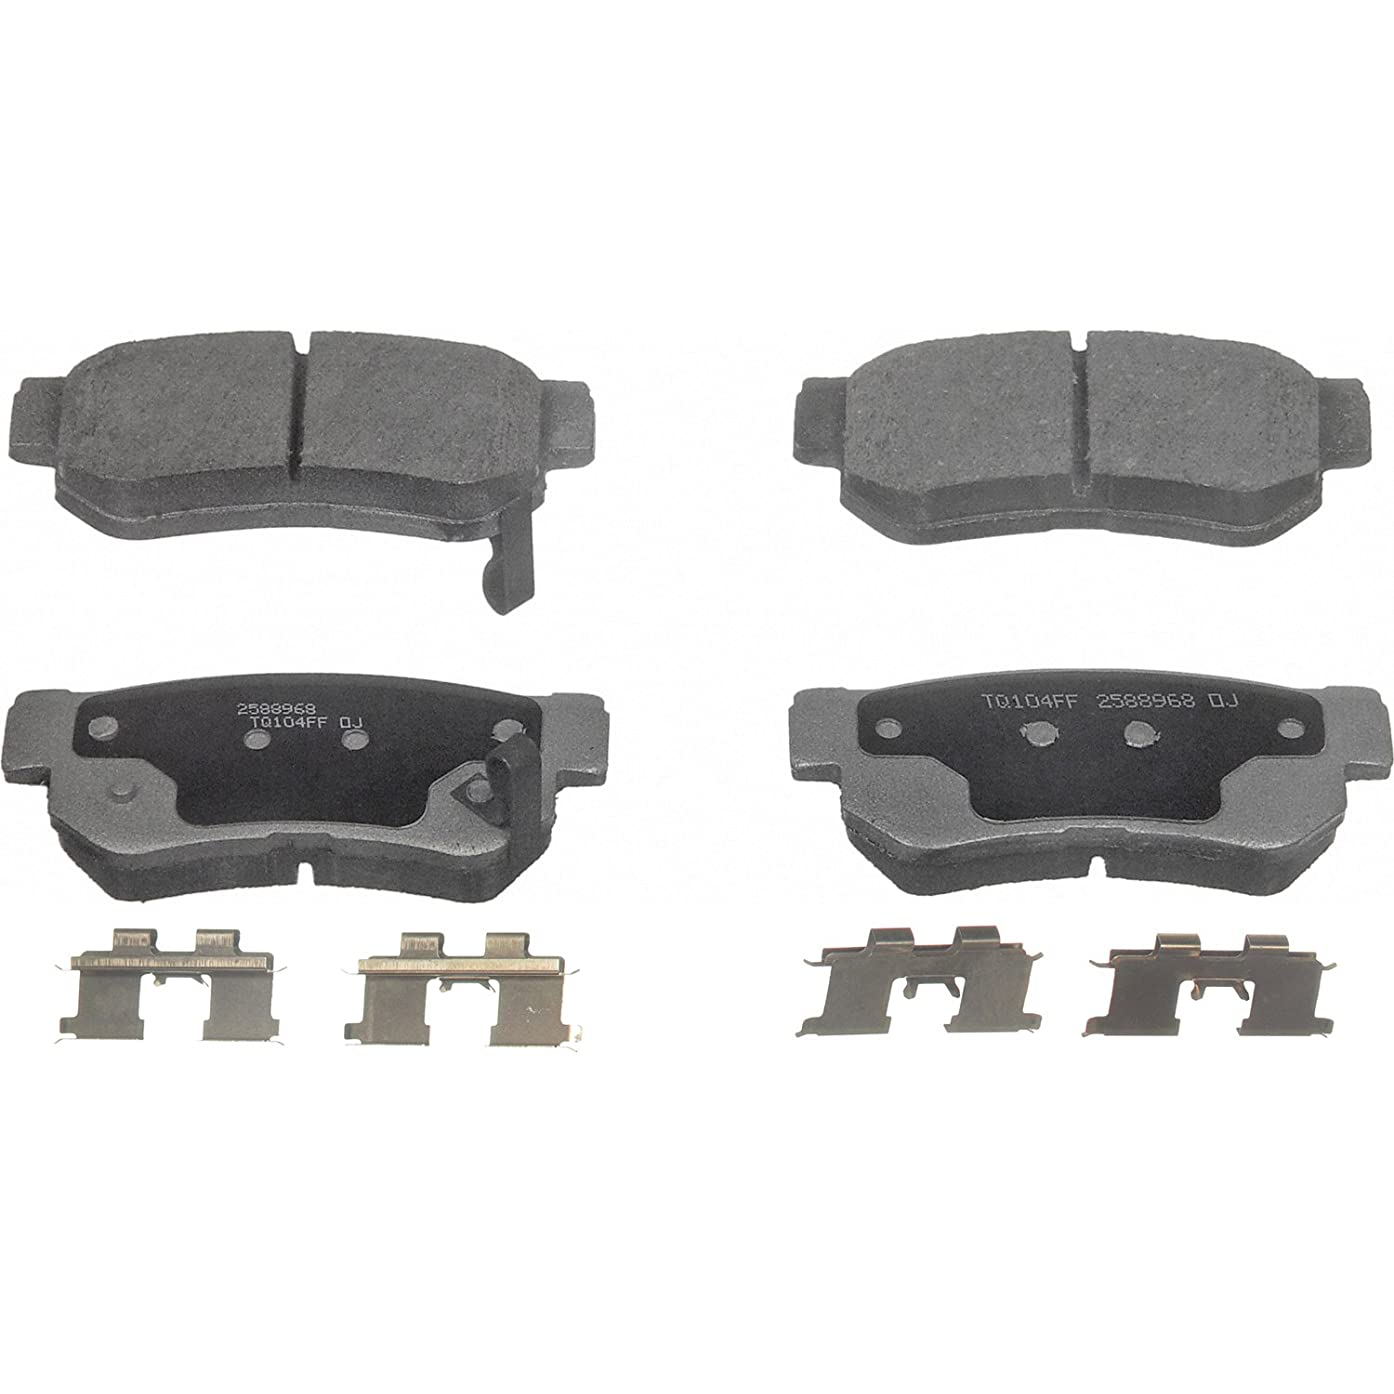 Wagner ThermoQuiet PD813 Ceramic Disc Pad Set With Installation Hardware, Rear